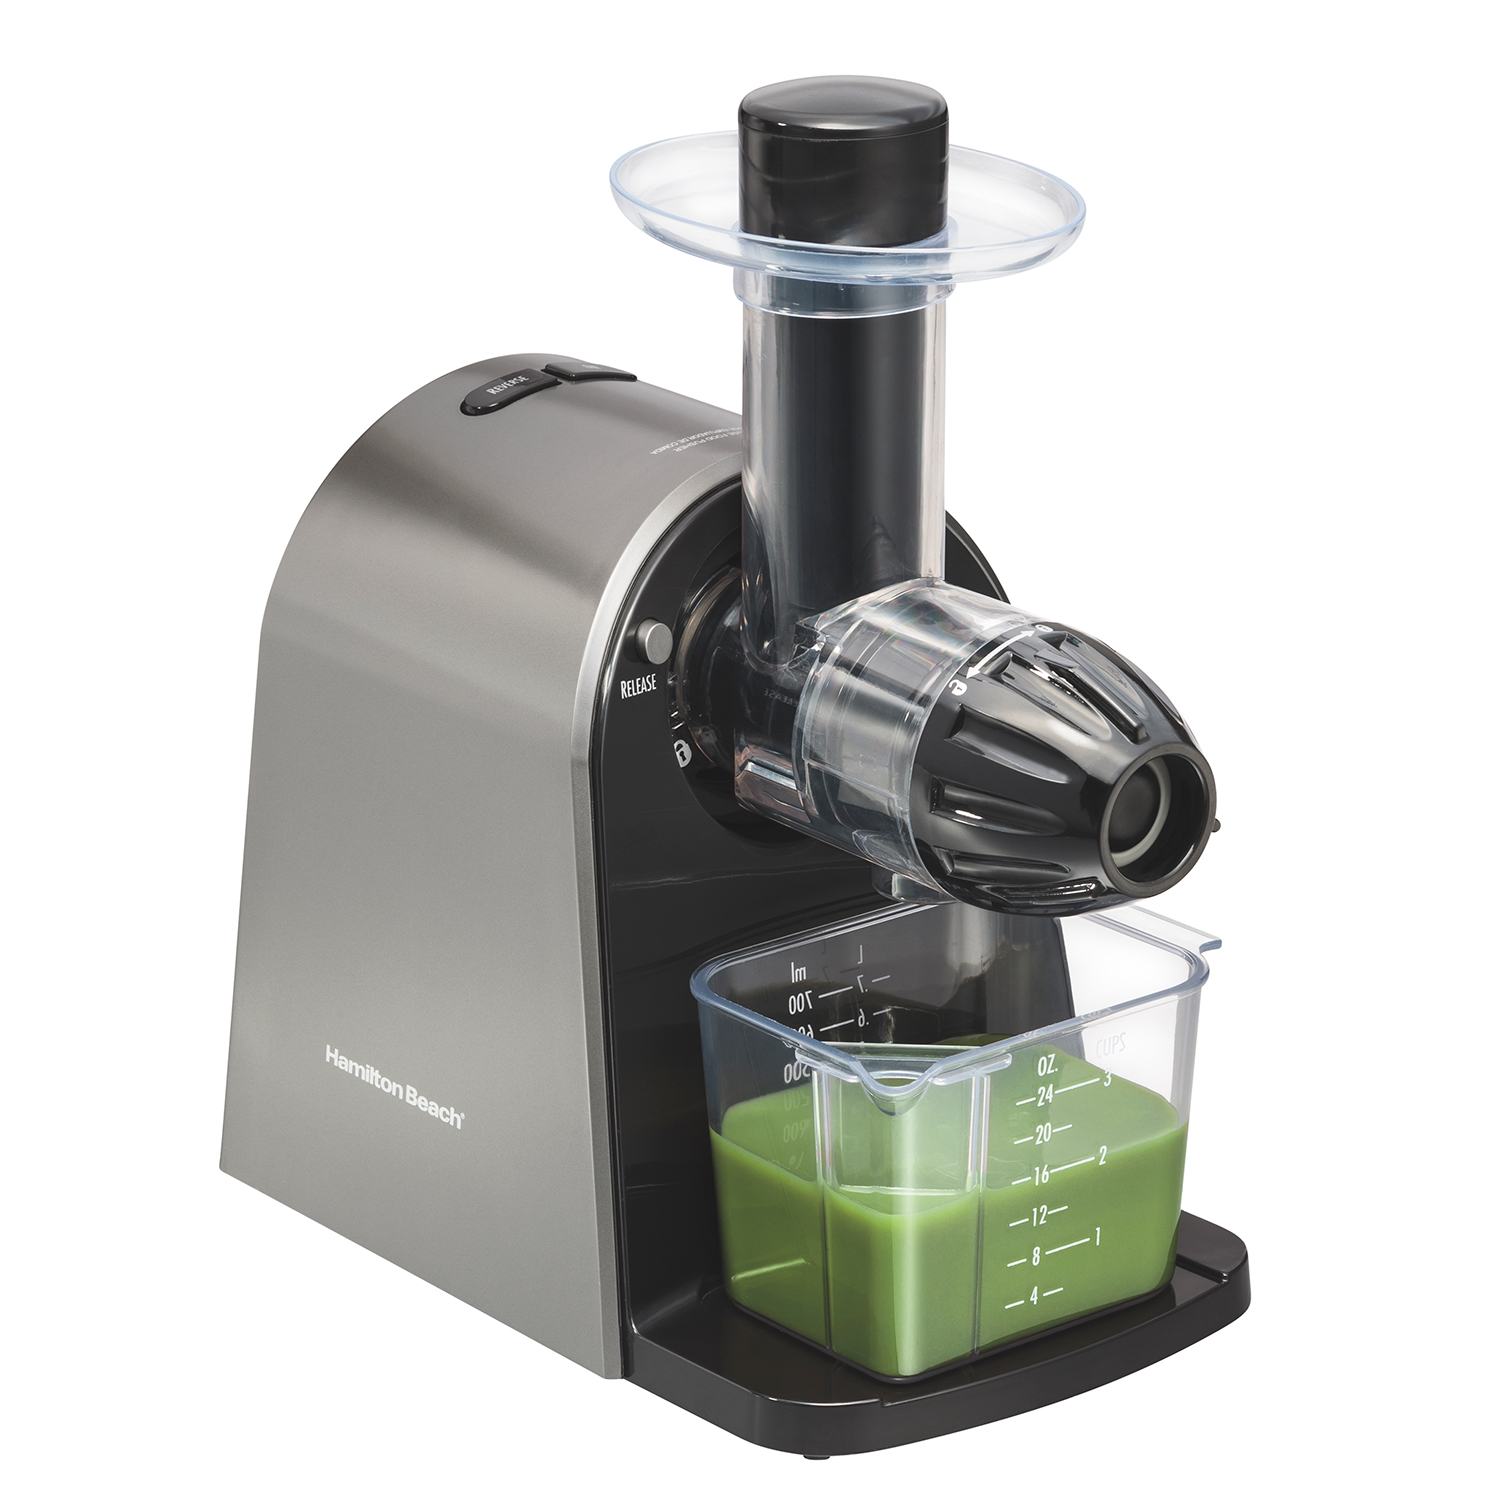 Hamilton Beach Slow Juicer - 67951